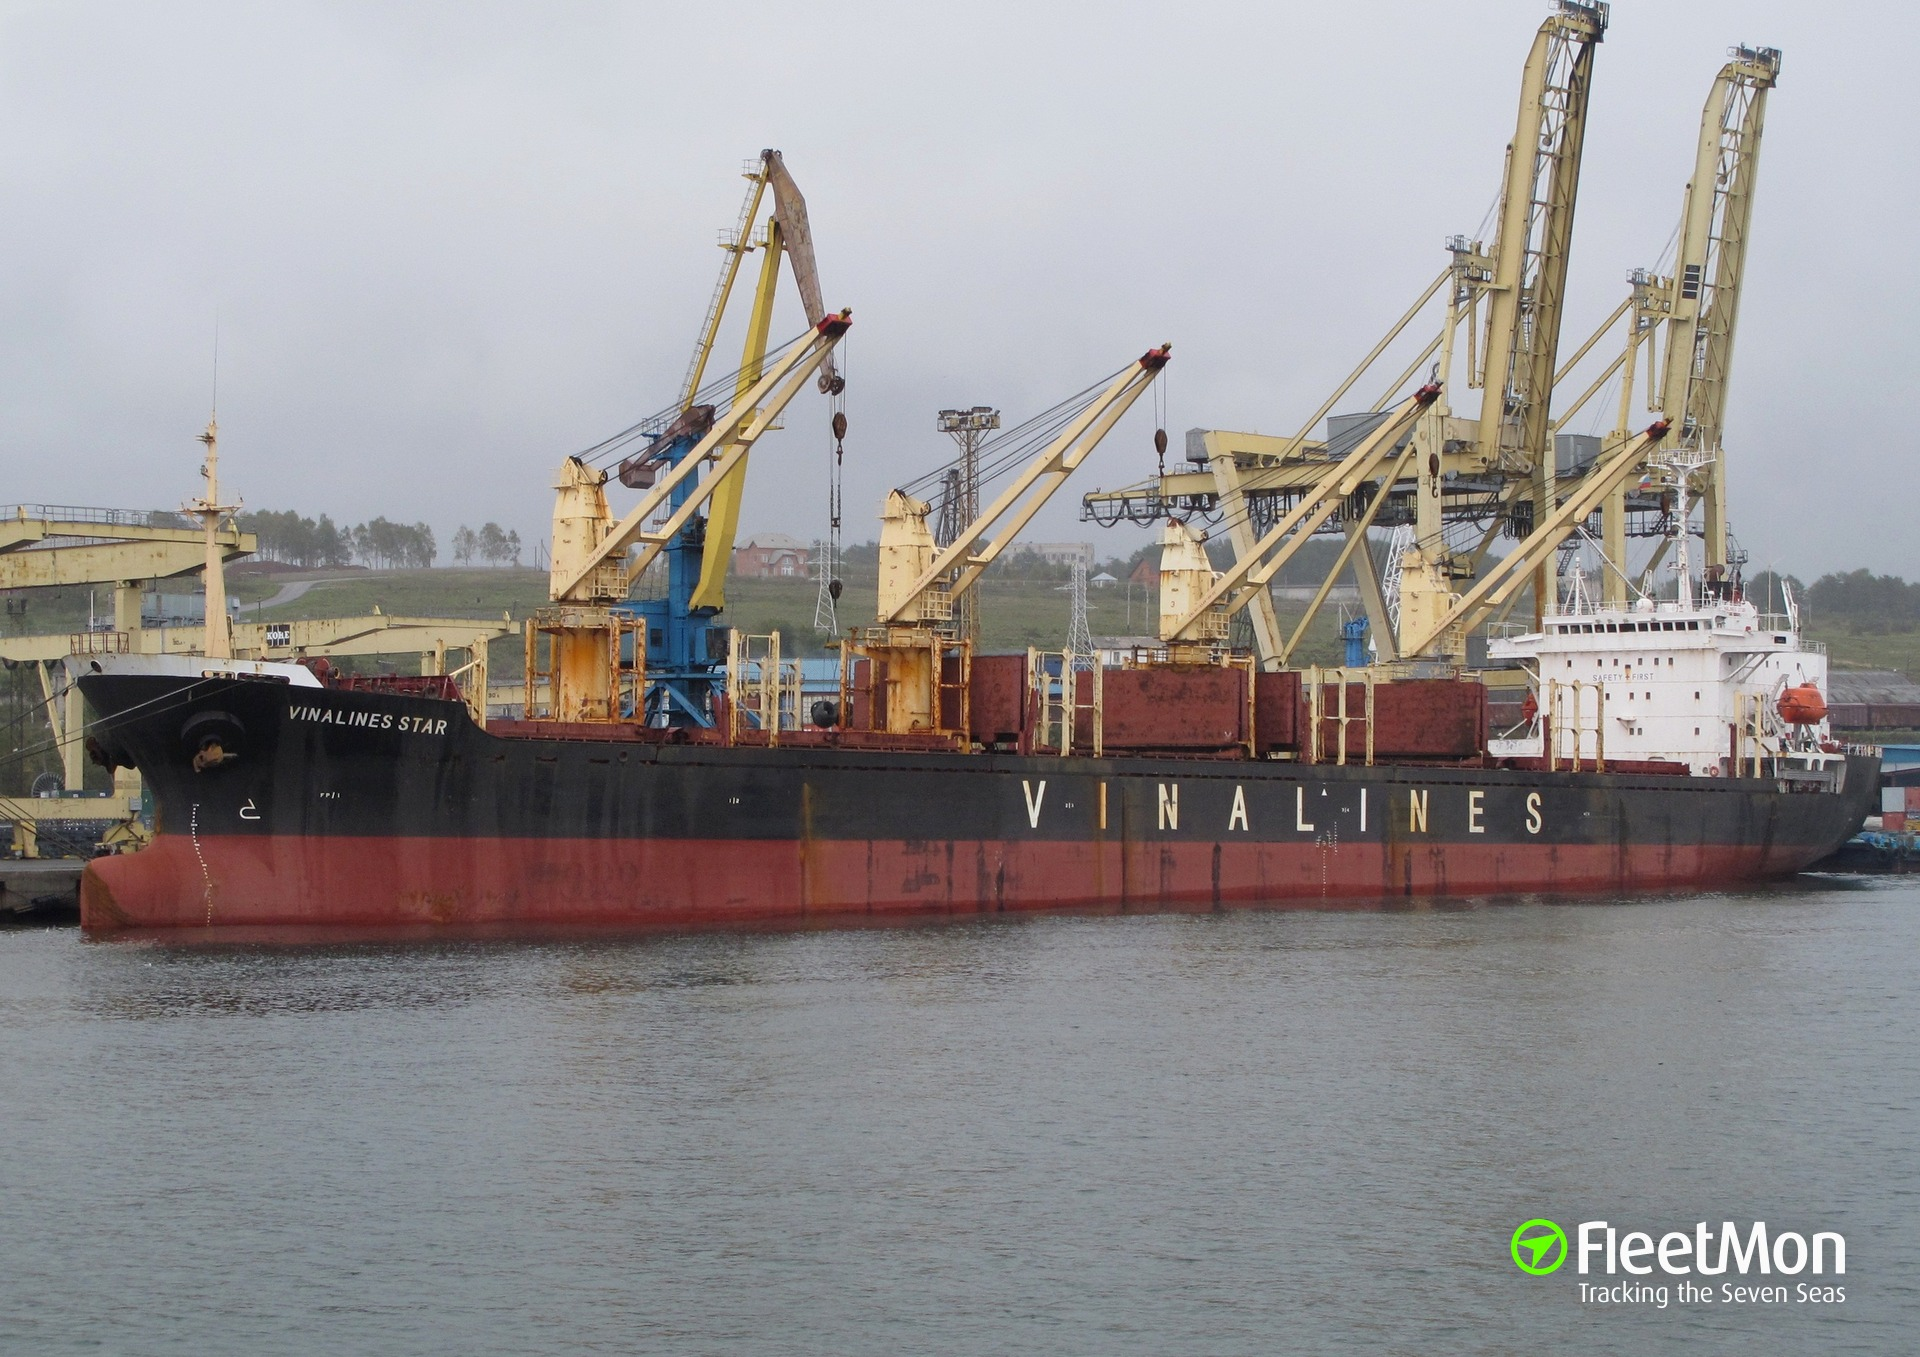 Vinalines freighter arrested in Chittagong, company protests arrest turned to Vietnam Government